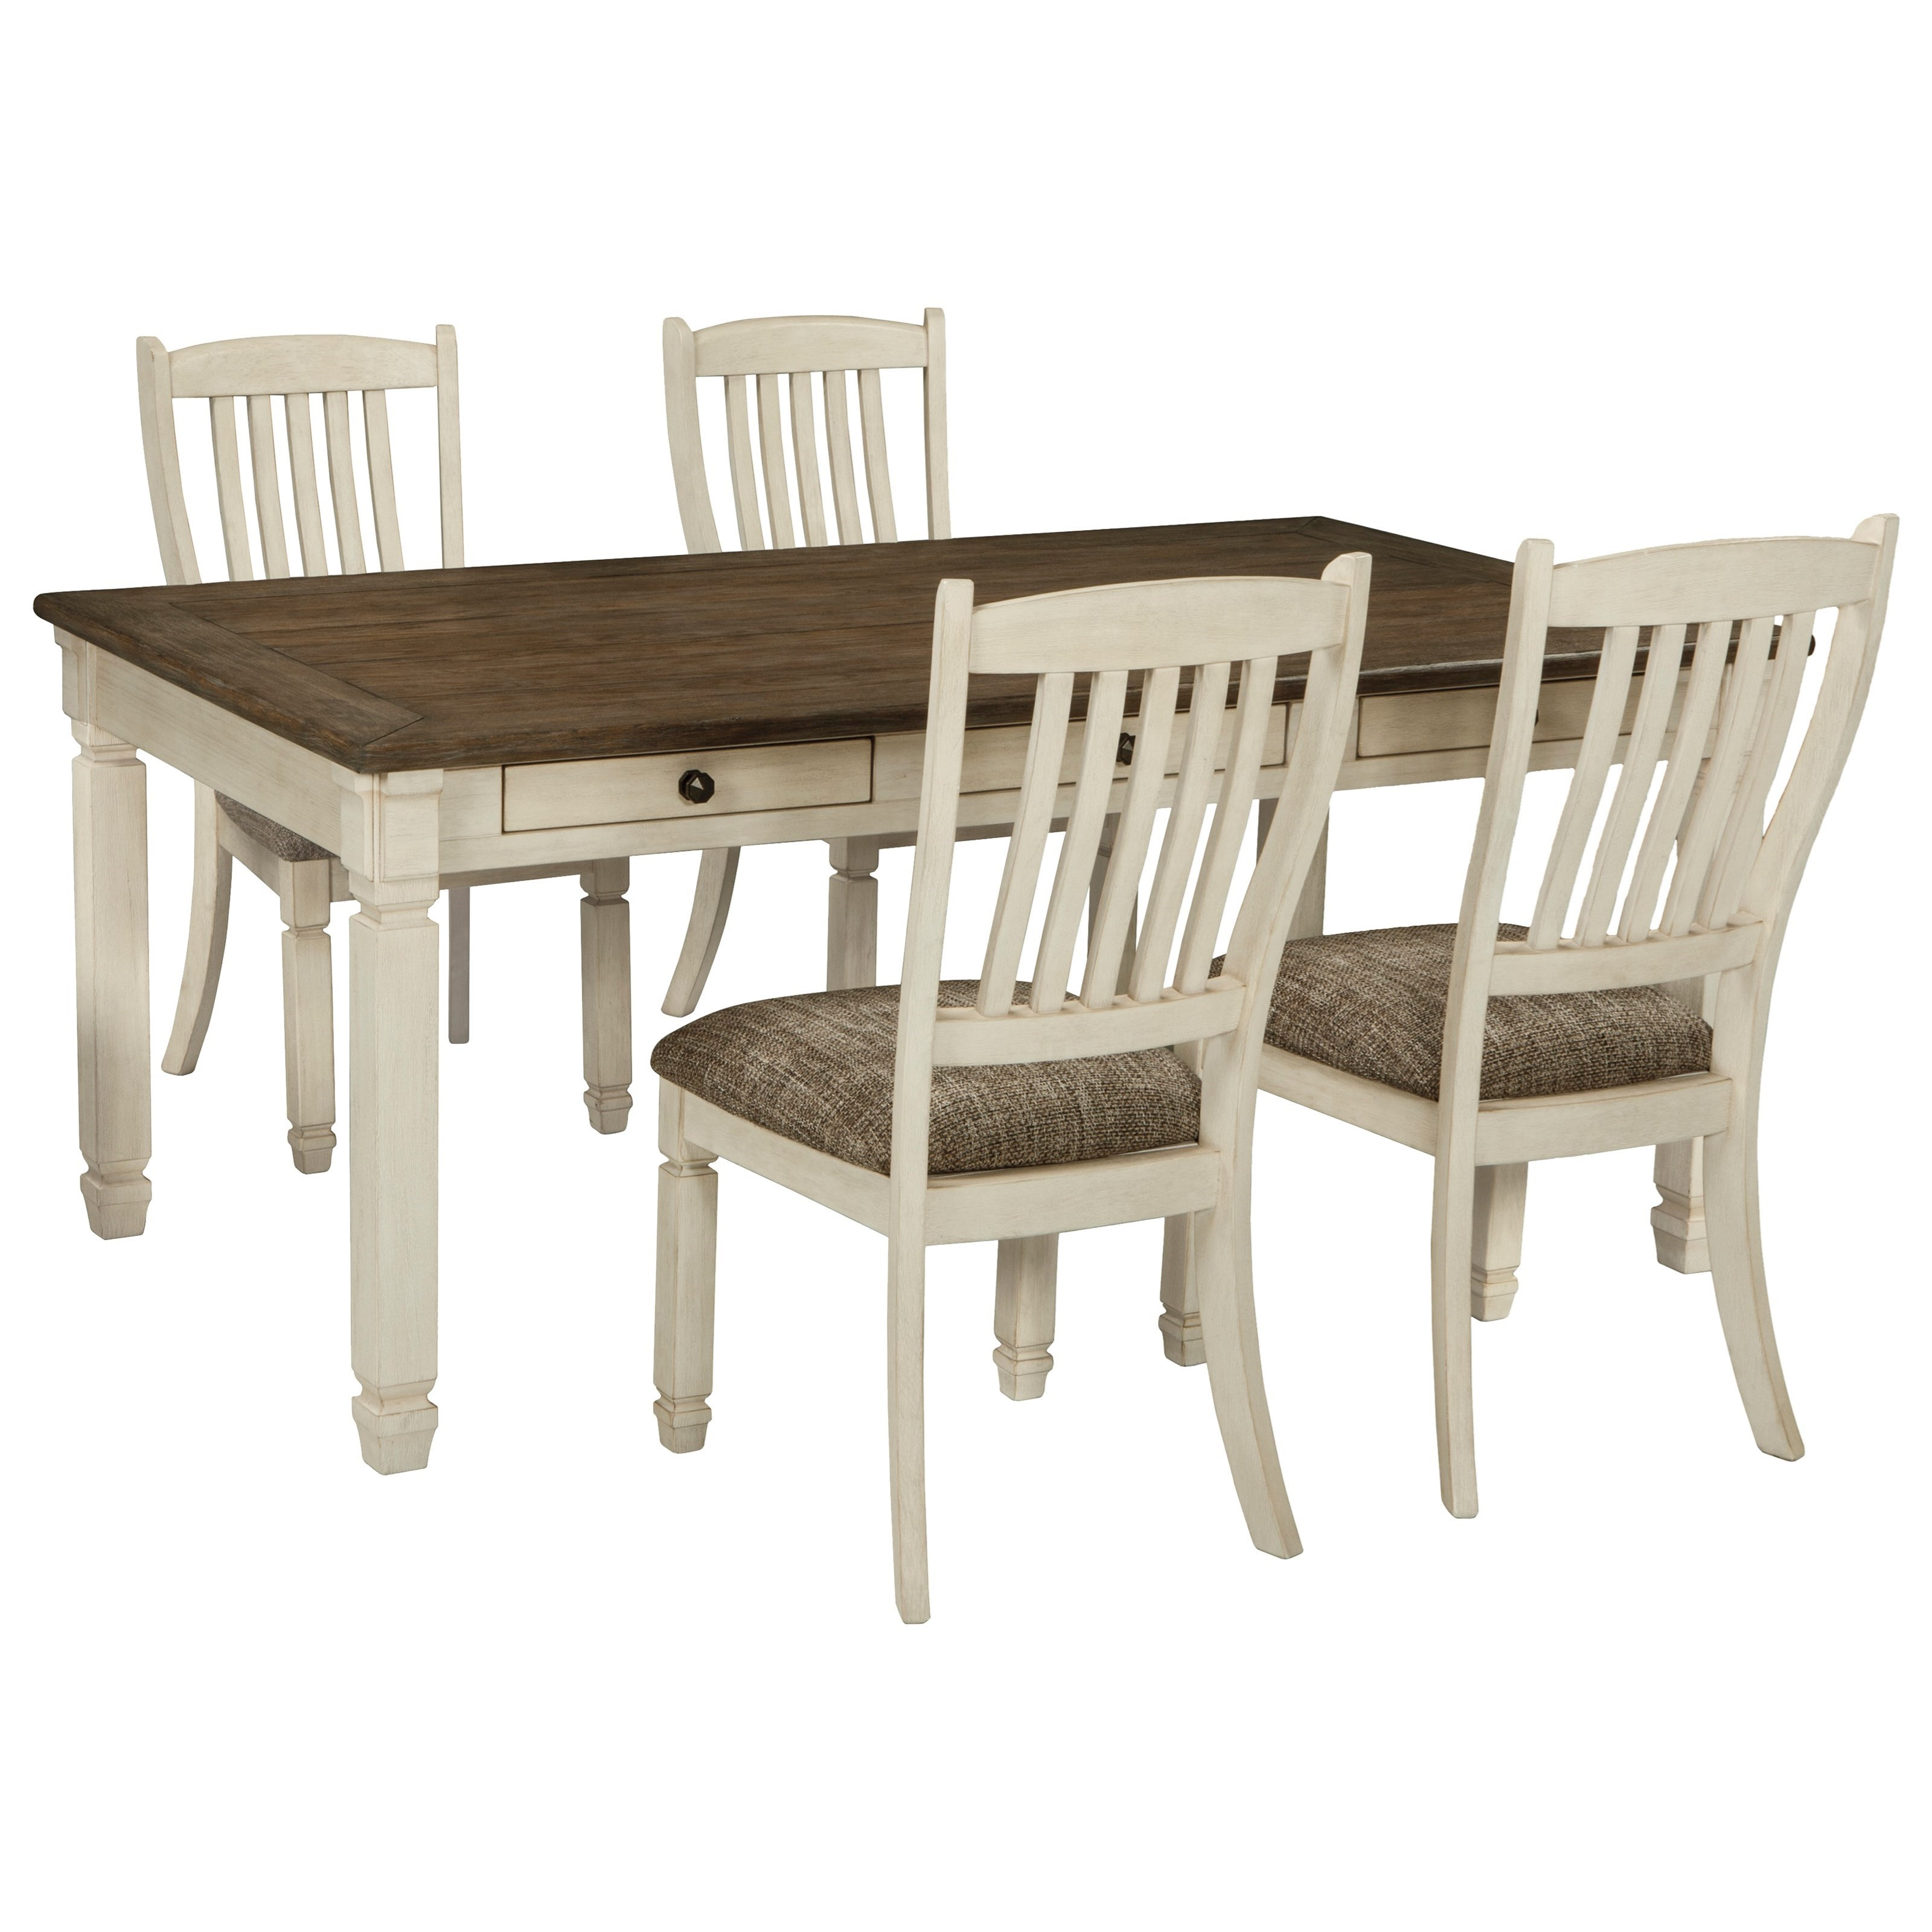 a364cbc891ca Relaxed Vintage 5-Piece Table and Chair Set. Low price guarantee badge by Signature  Design by Ashley